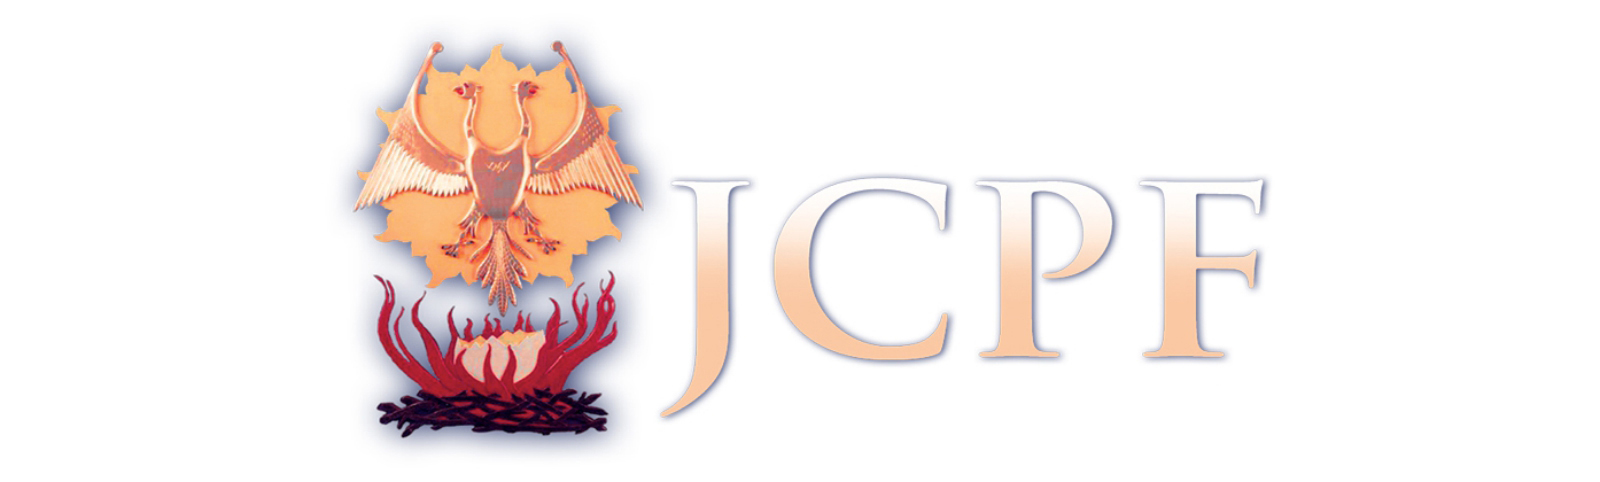 Joseph Carey Psychic Foundation - JCPF